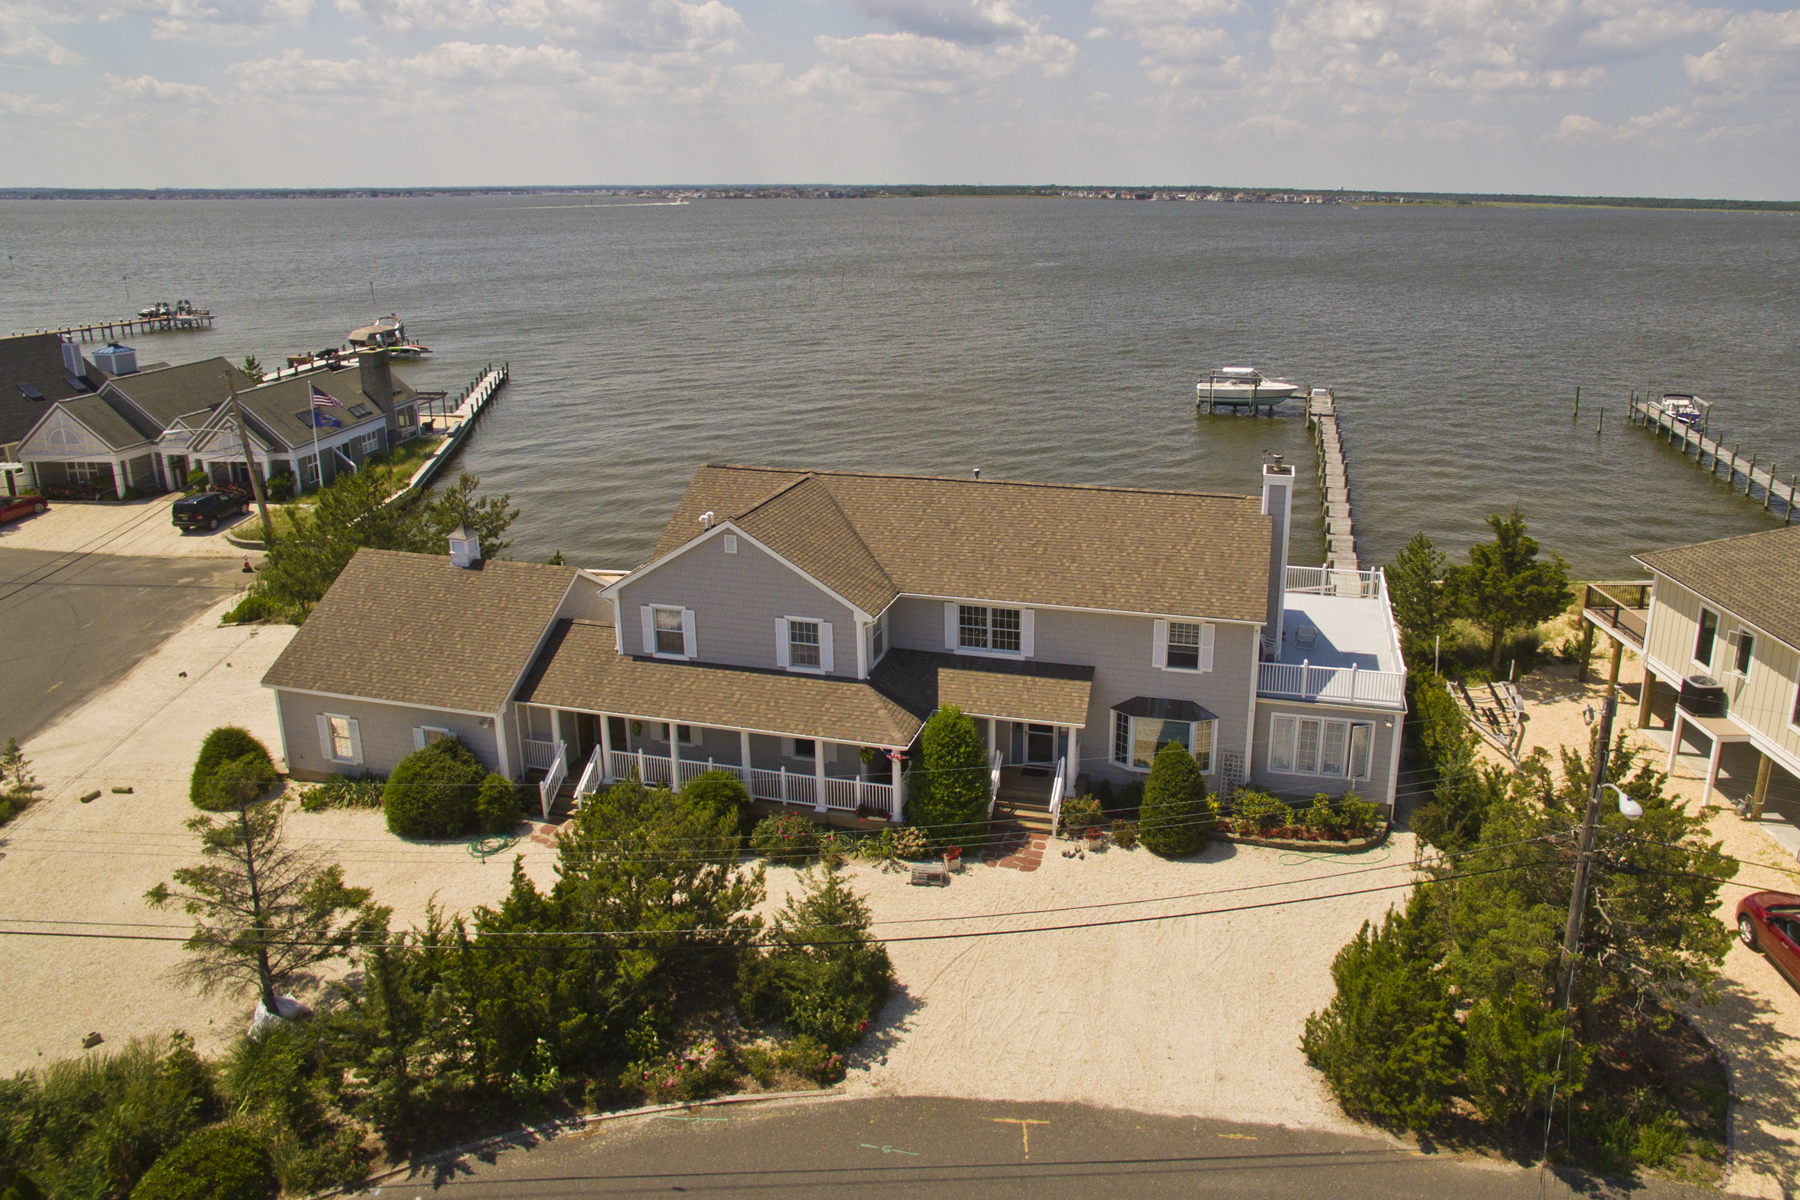 Single Family Home for Sale at Largest Bayfront in Normandy Beach! 497 Normandy Drive Normandy Beach, 08739 United States